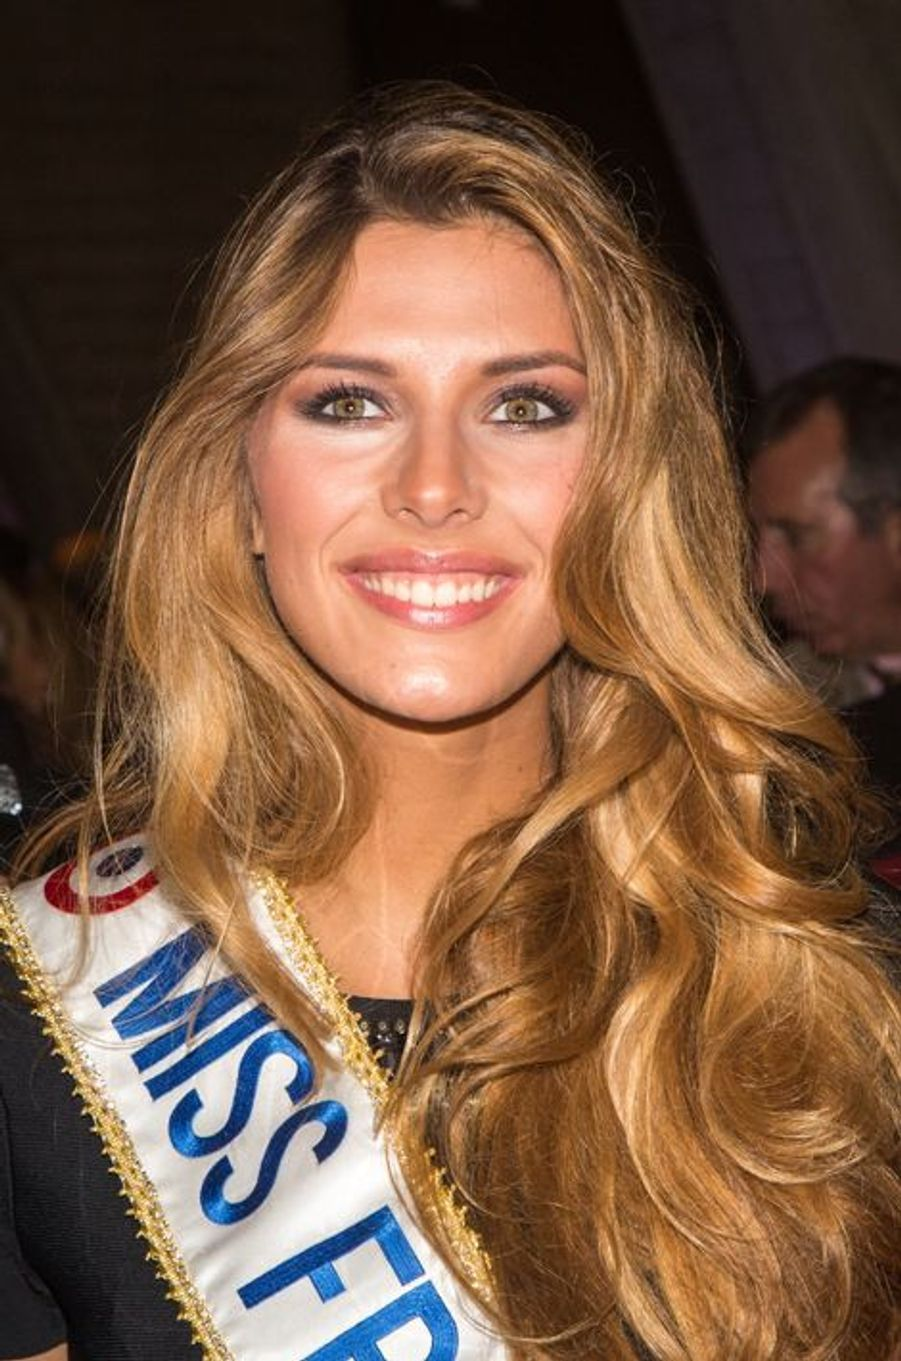 Camille Cerf, Miss France 2015, à Paris le 8 décembre 2014